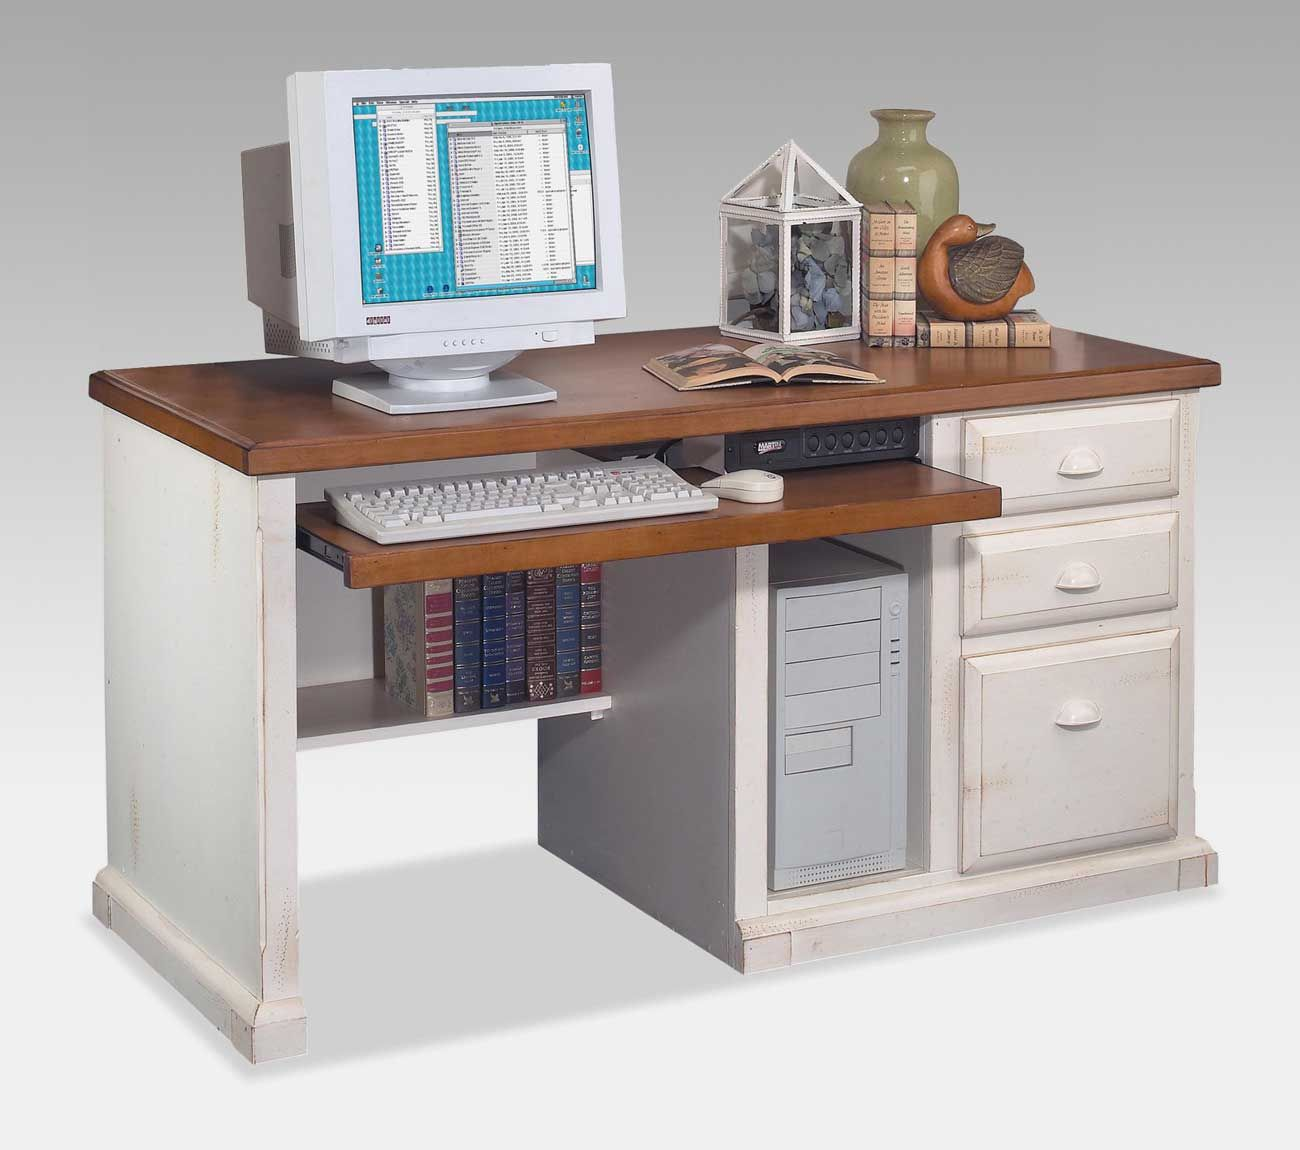 The Unique Computer Desk Ideas Table With Wood Counter For Monitor White Freestanding Cabinetry Plus Bookcase Office